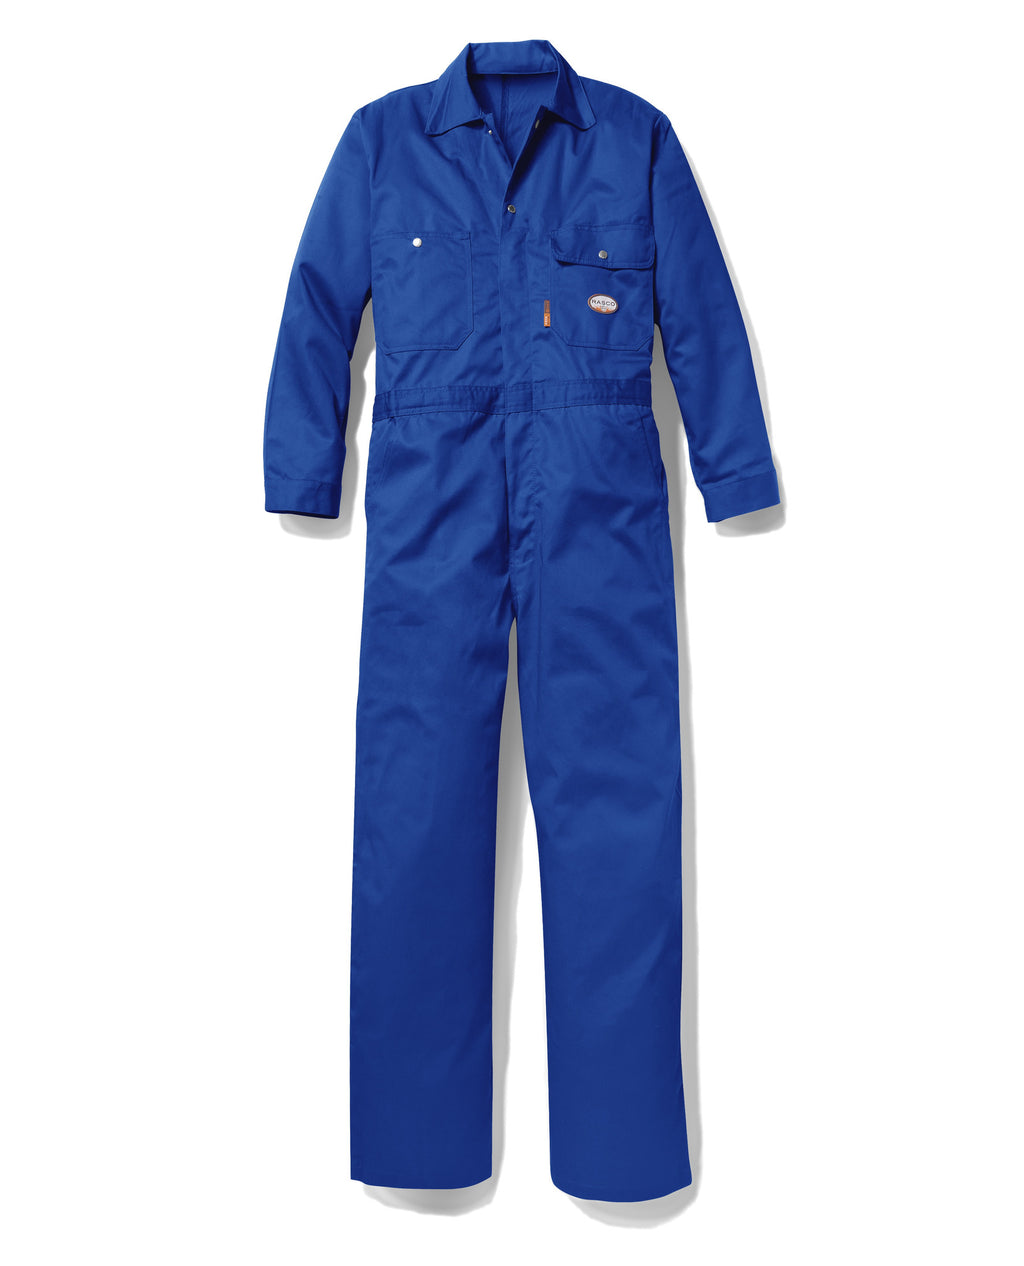 Rasco FR Lightweight Royal Blue DH Contractor Coveralls